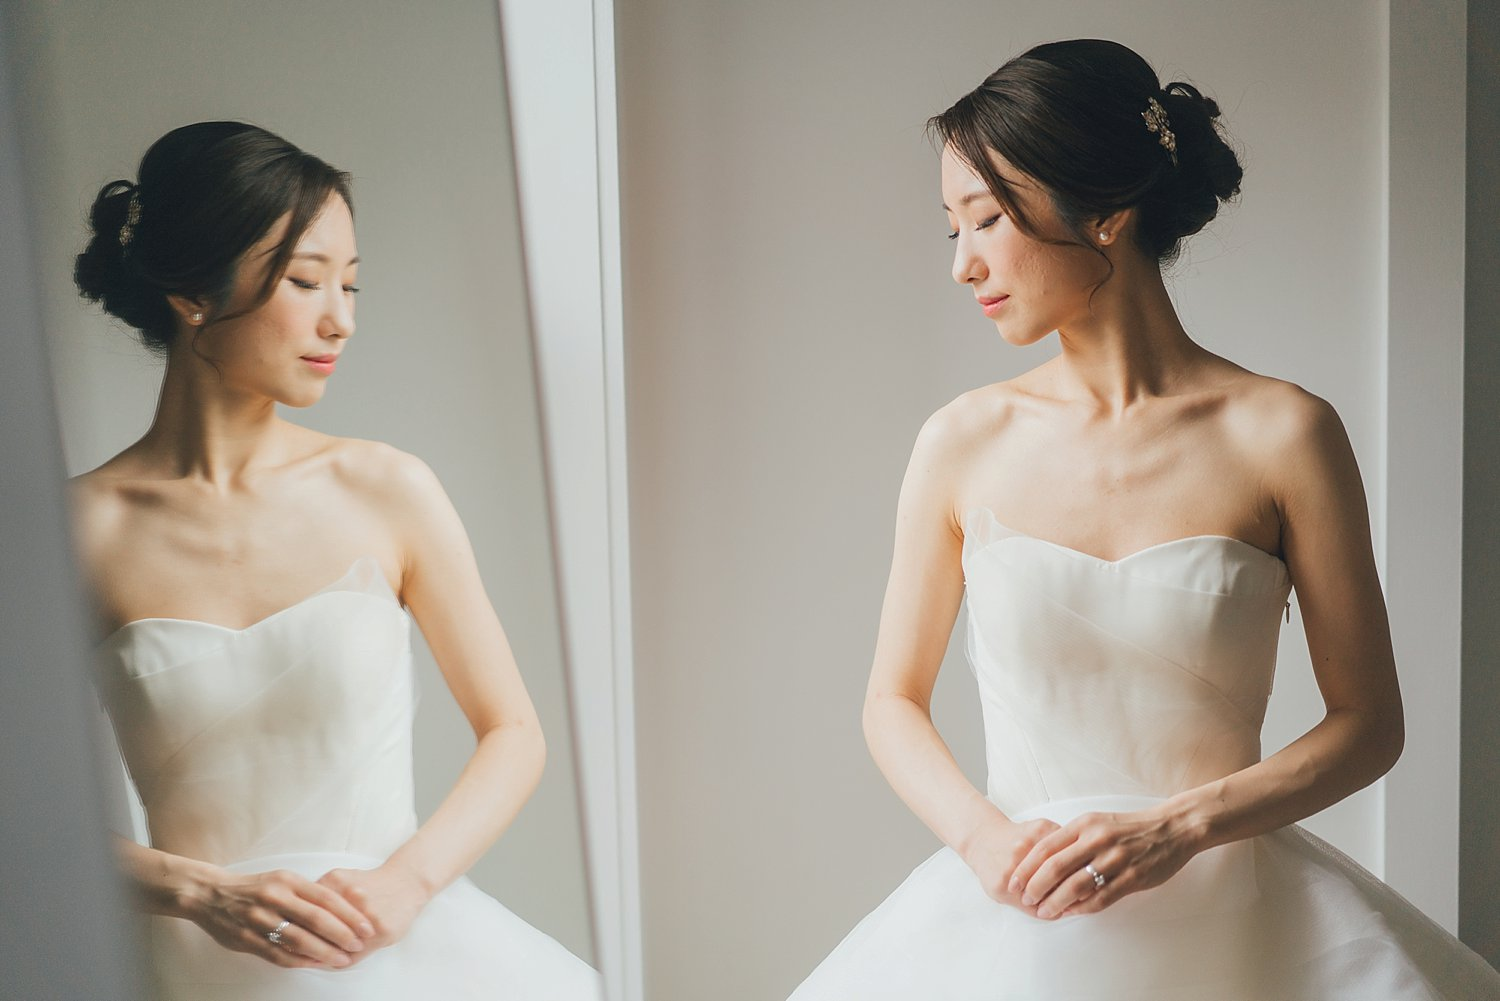 nyc-wedding-photography-nj-tri-state-cinematography-intothestory-by-moo-jae_0285.jpg